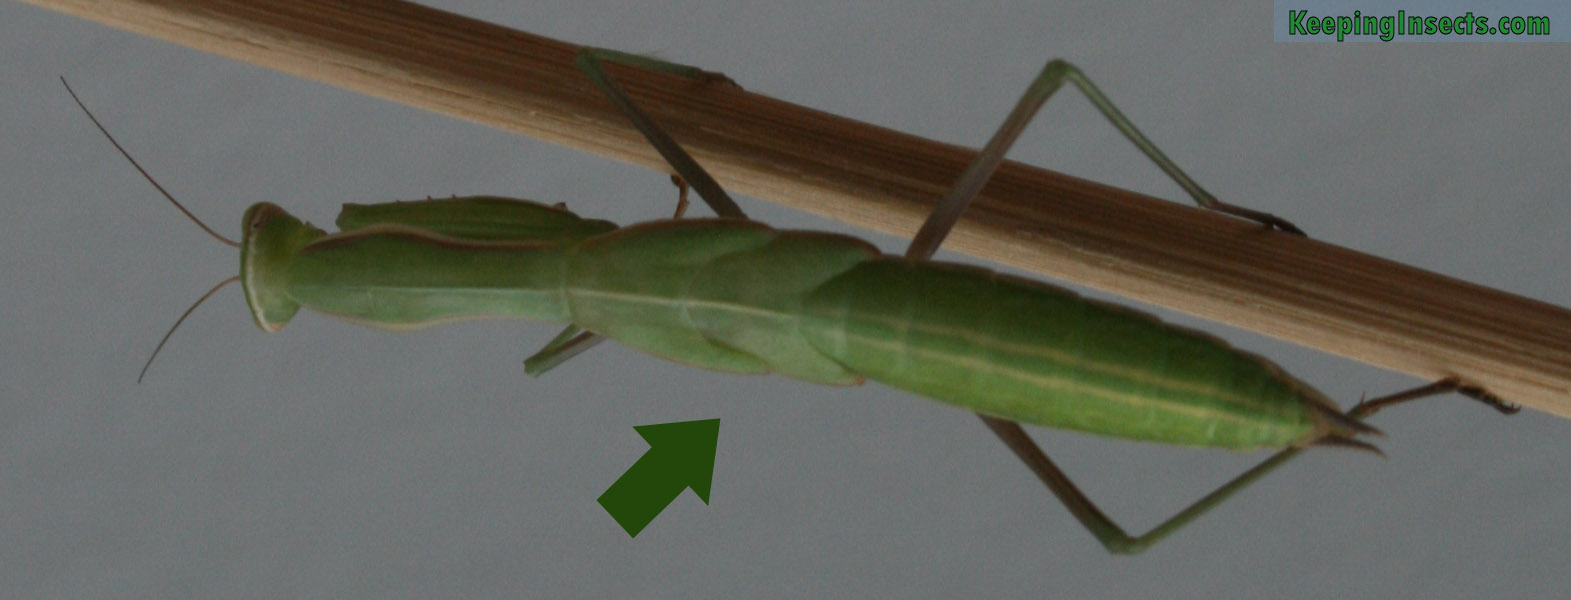 Faq About Praying Mantises Keeping Insects